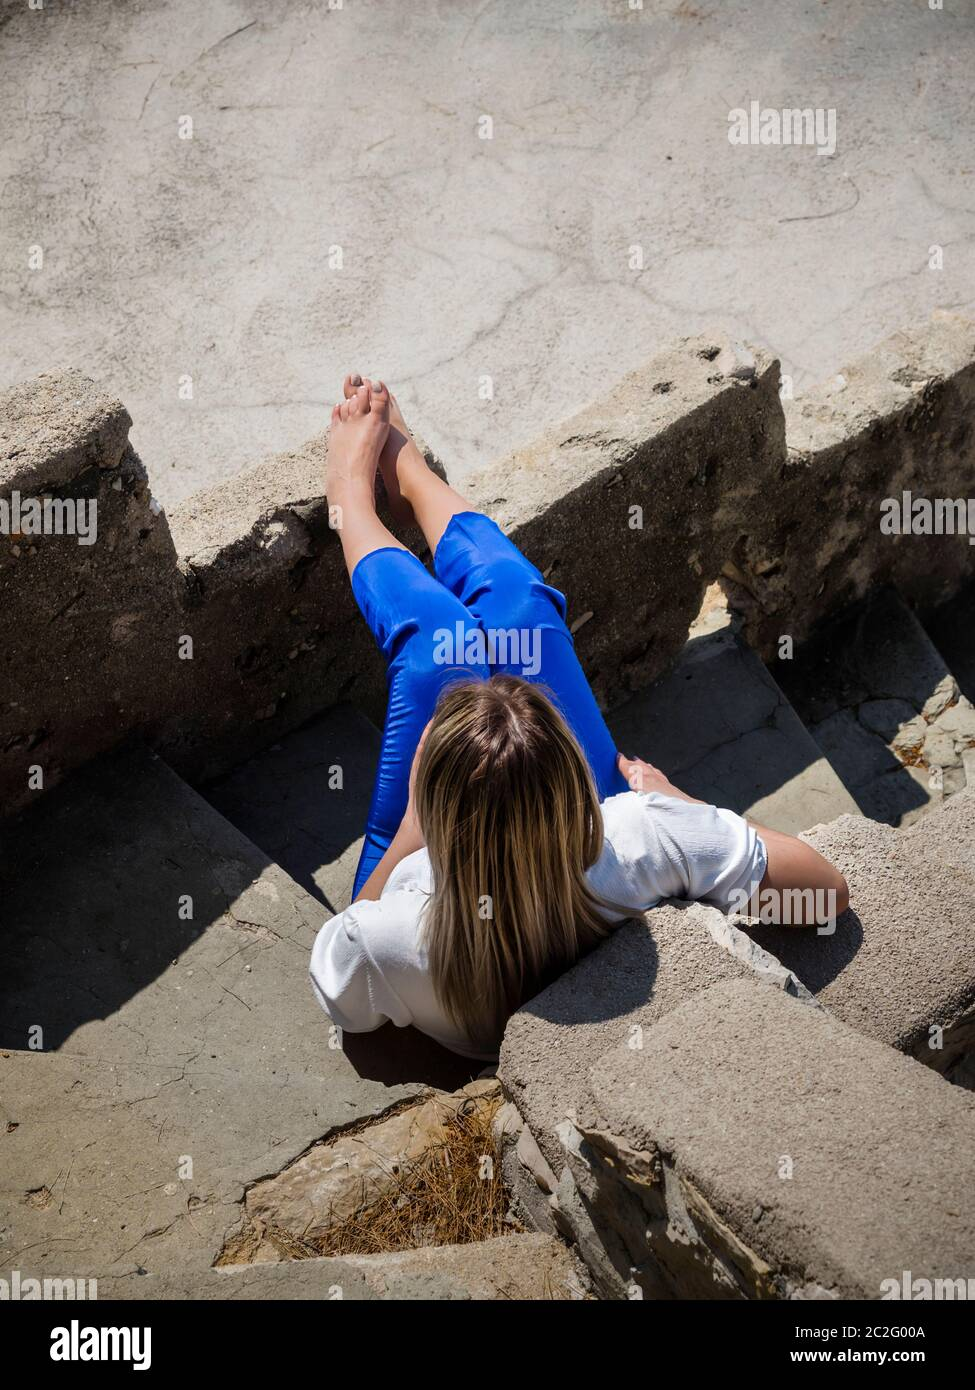 Teengirl seated sitting on staircase steps stairs view from above barefeet barefoot bare-feet legs Stock Photo